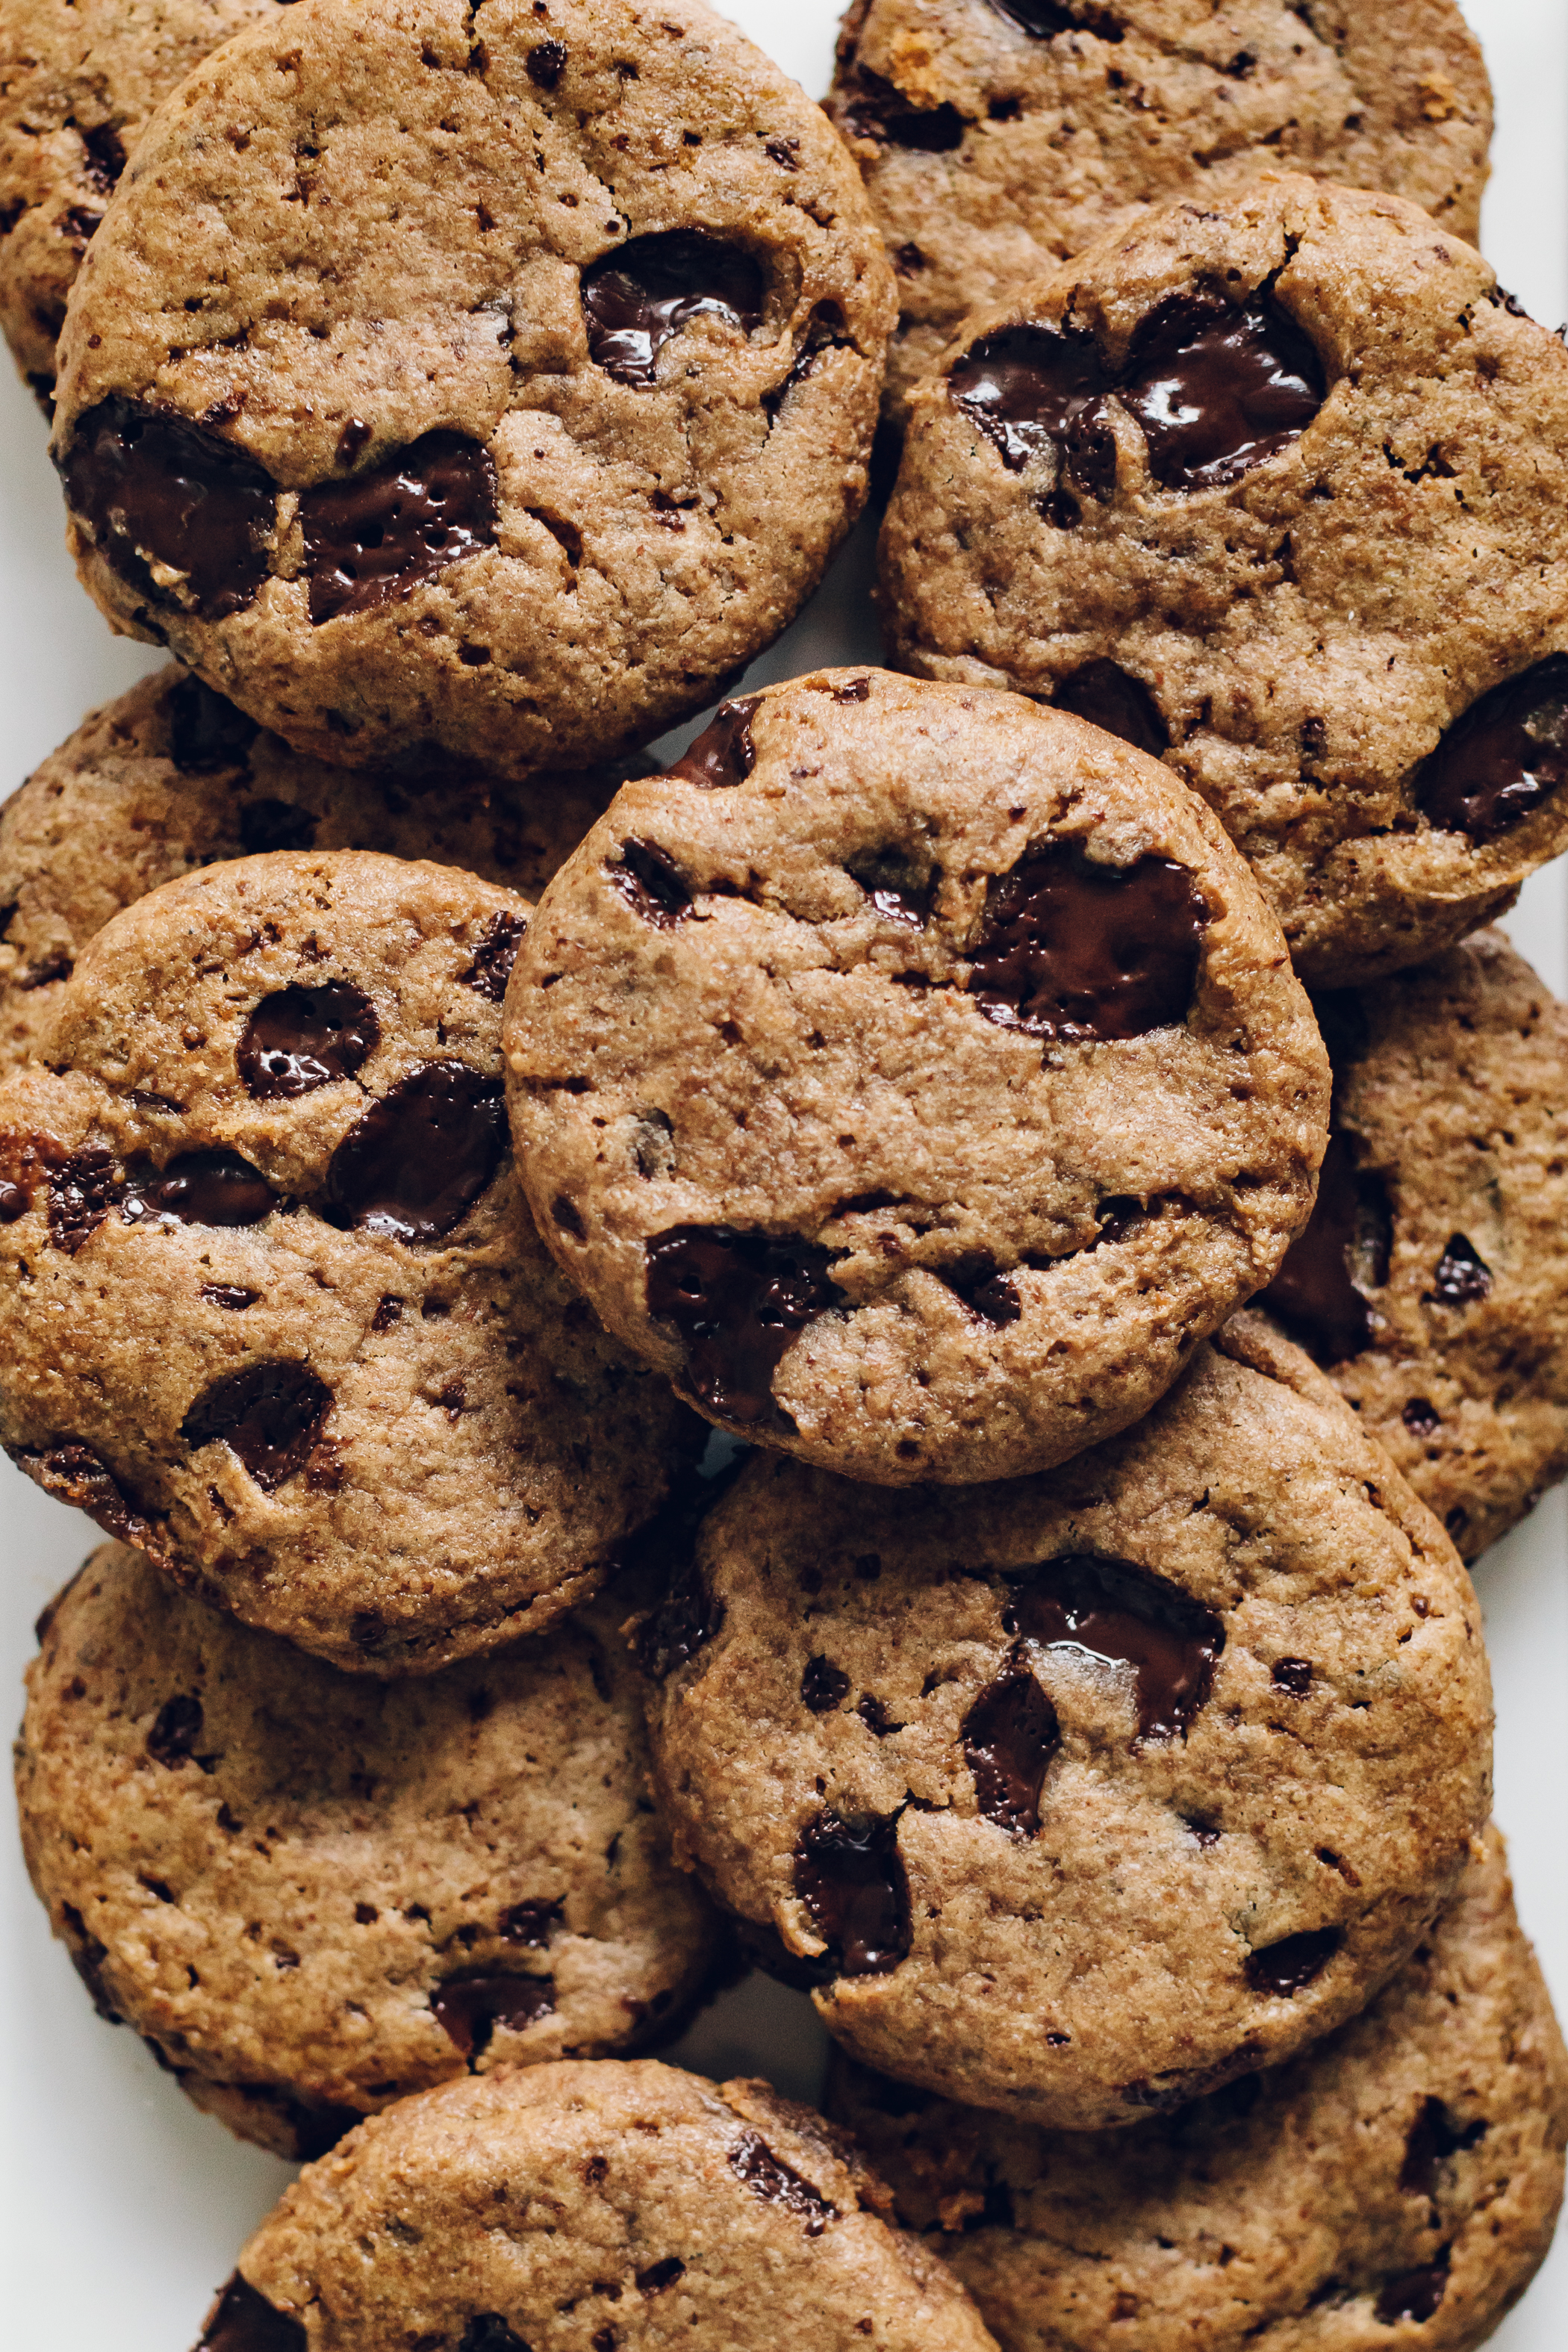 Chocolate Chip Cookies by Jessie May